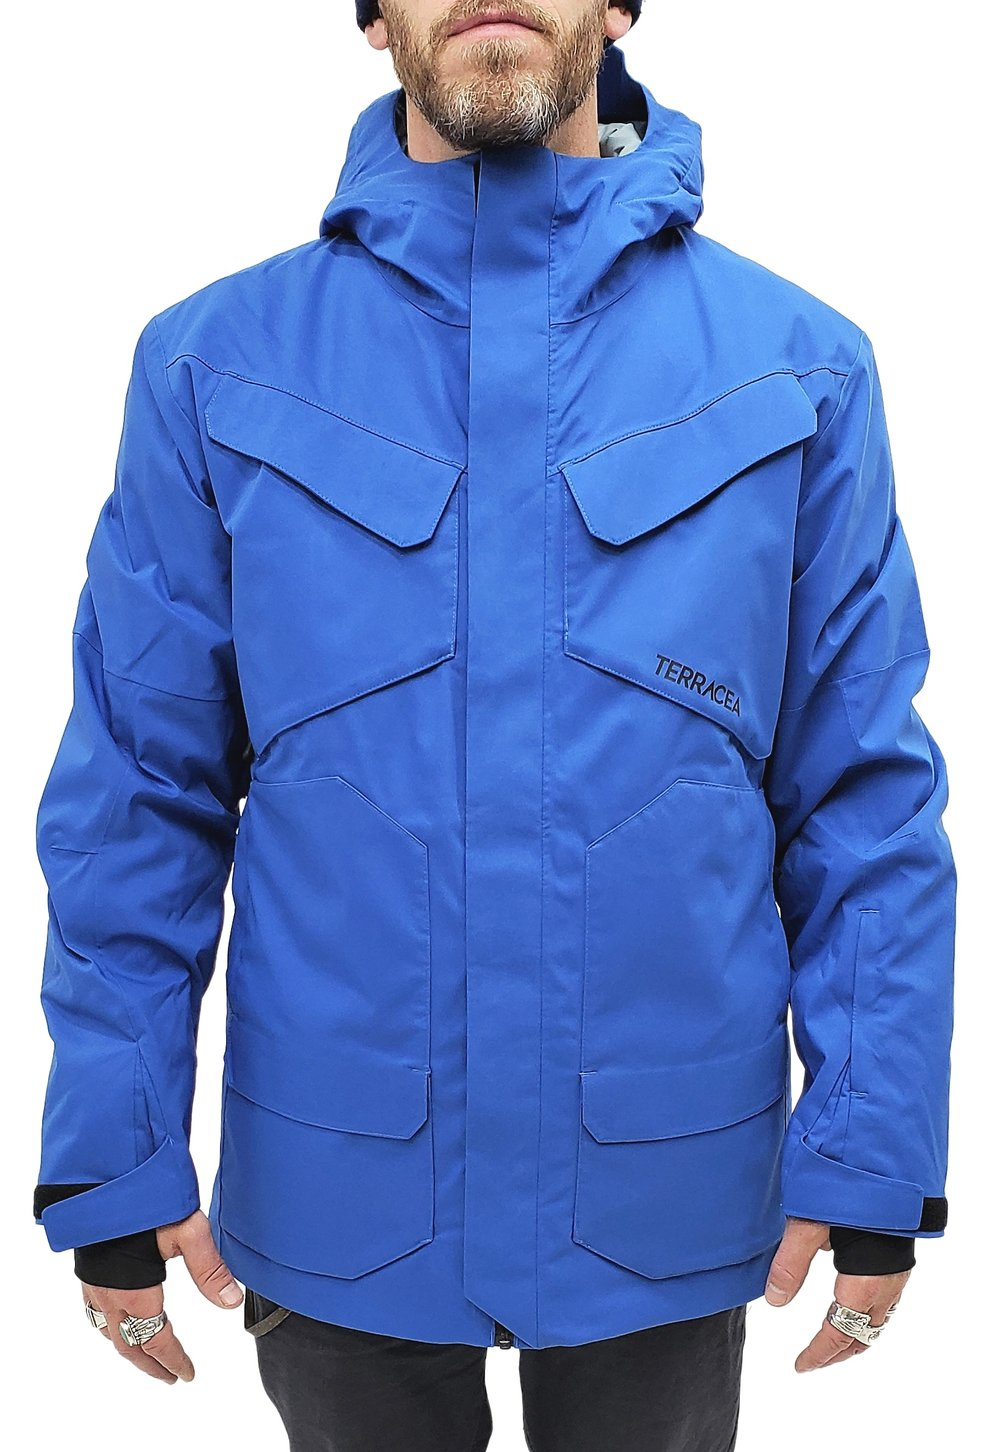 Men's Beacon 2L Insulated Jacket (Blue)